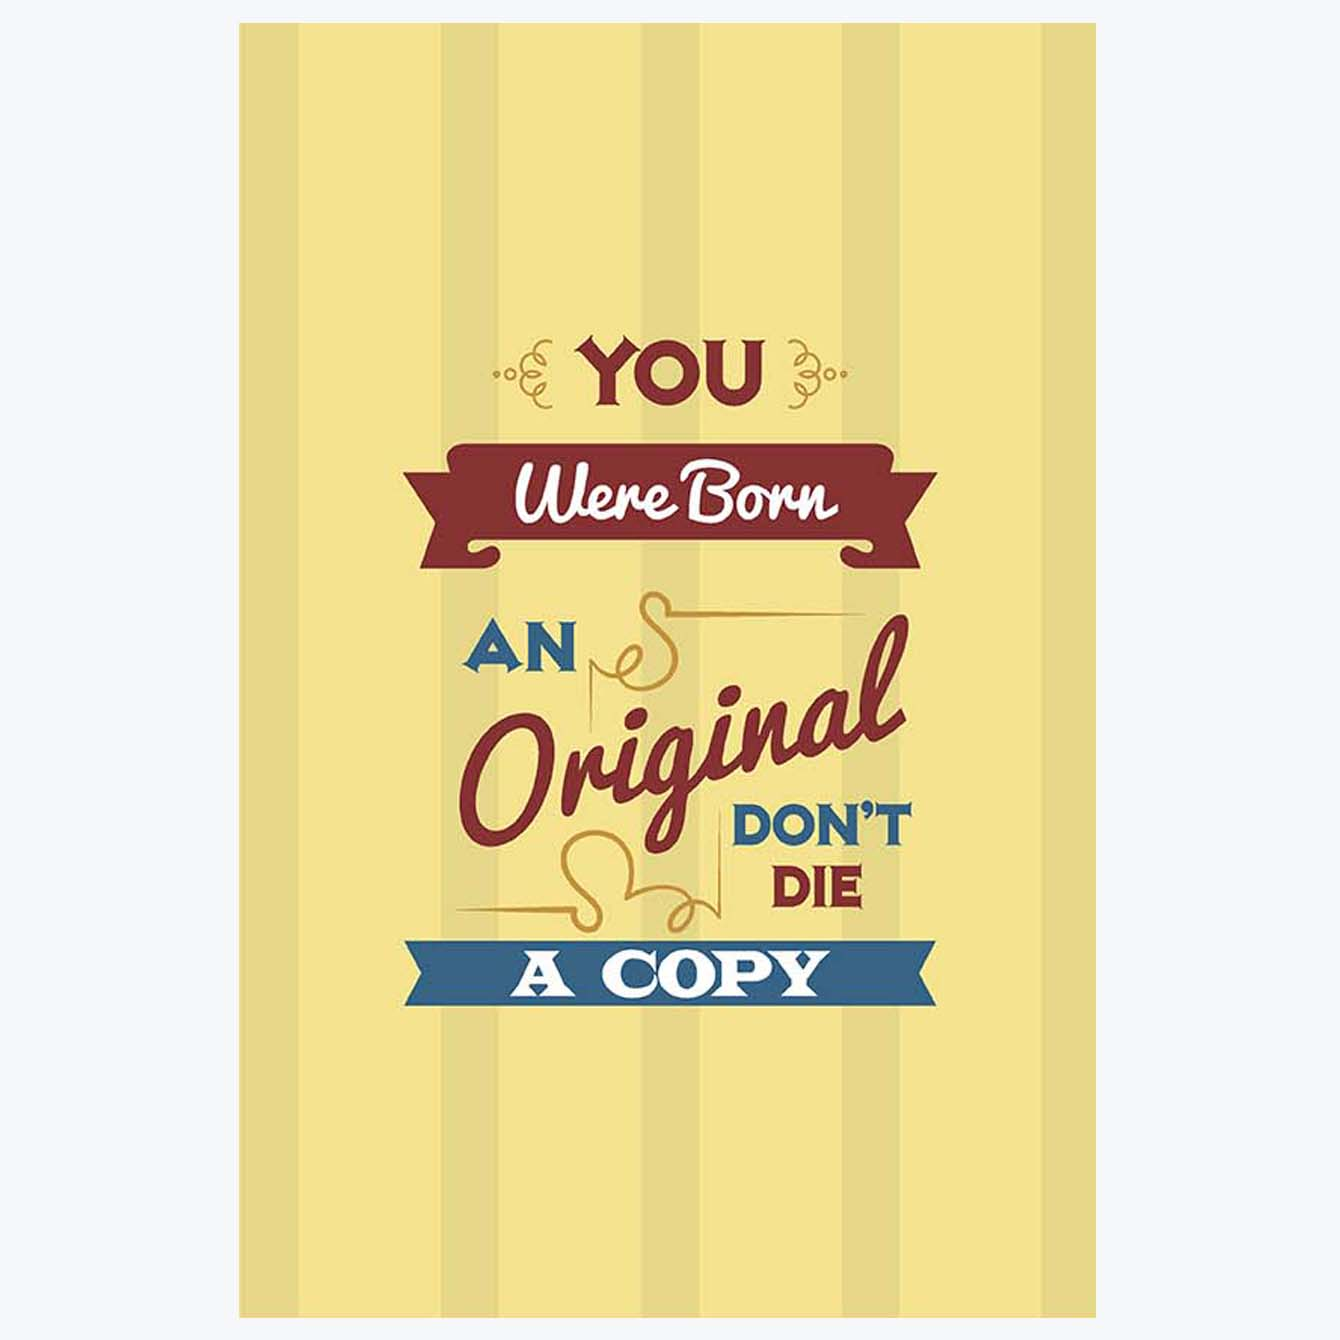 An Original Don't Die a copy Motivational Posters